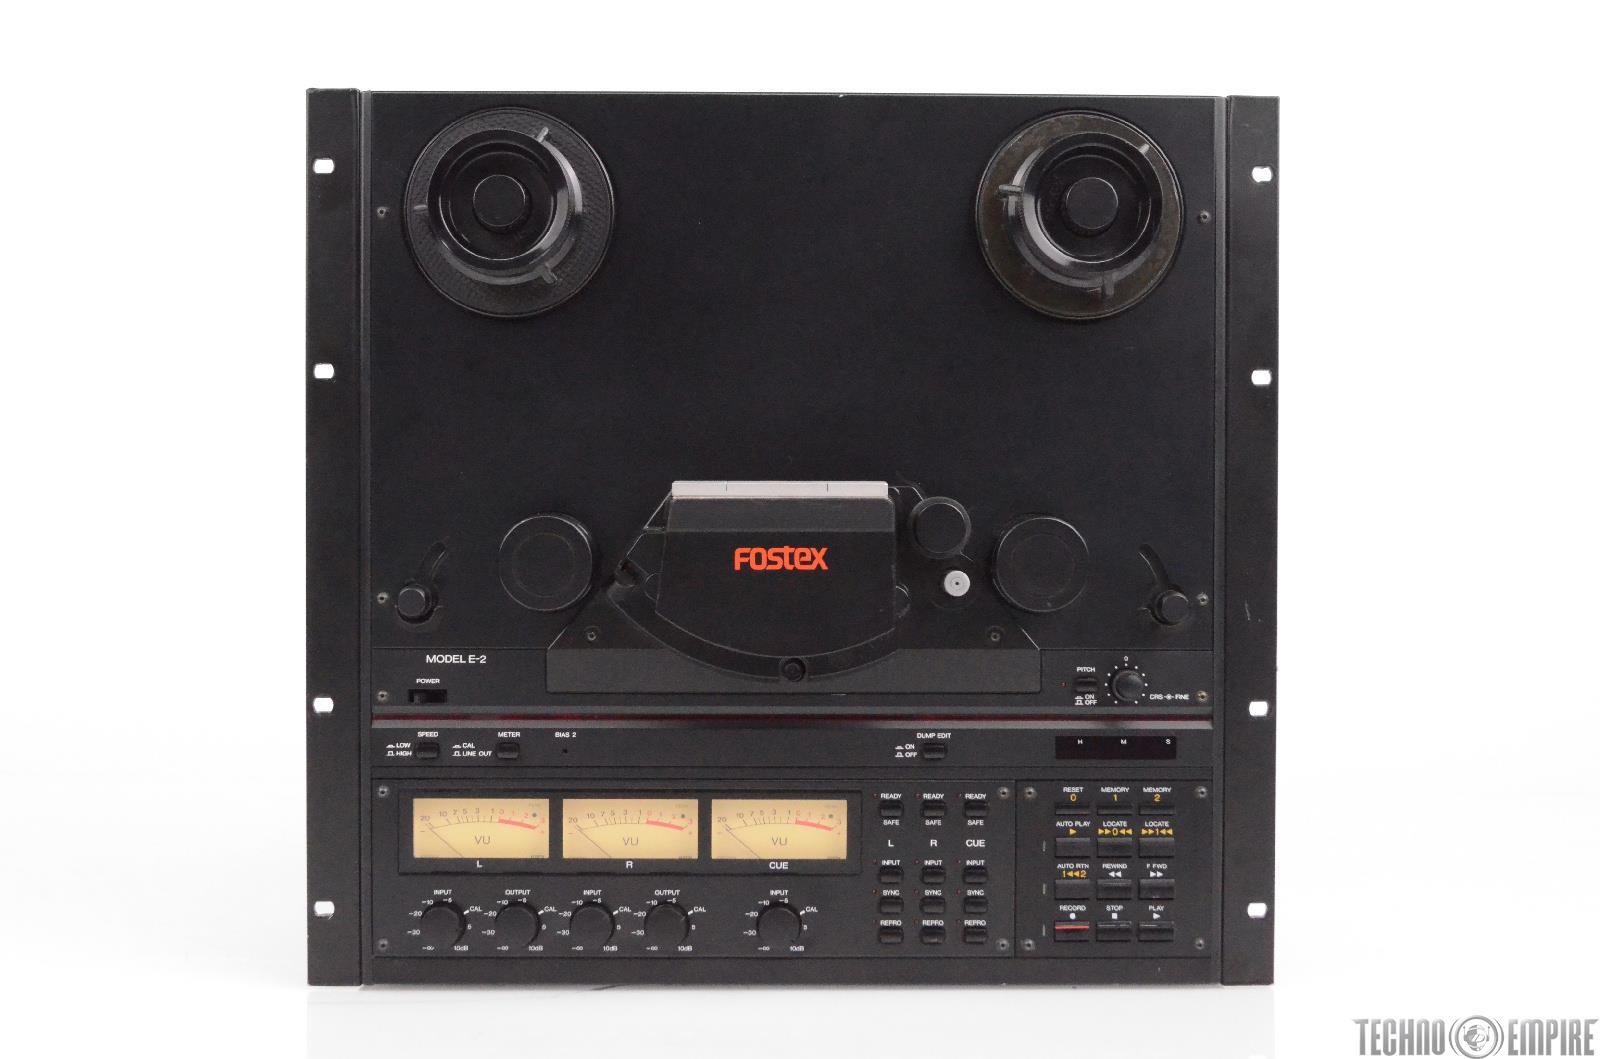 Fostex E-2 Reel to Reel 2 Track Analog Tape Recorder & Reproducer E2 #30728